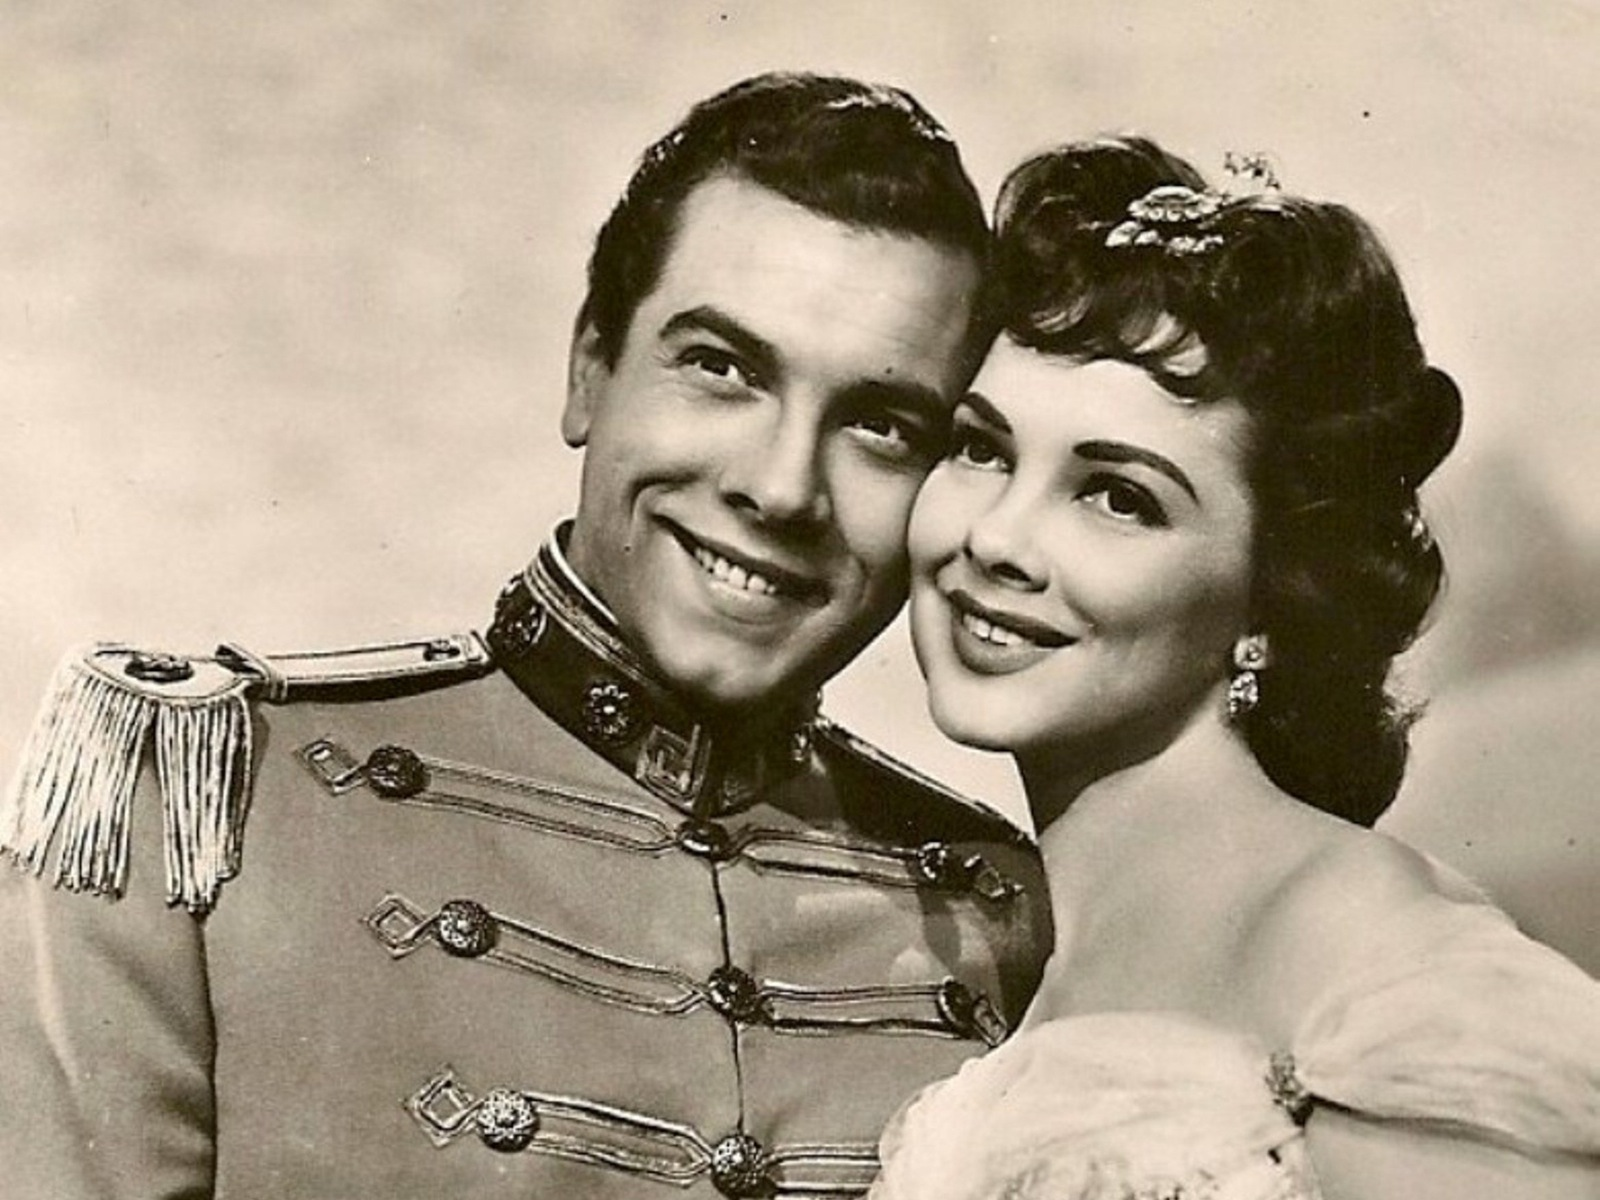 Be My Love - Mario Lanza & Kathryn Grayson